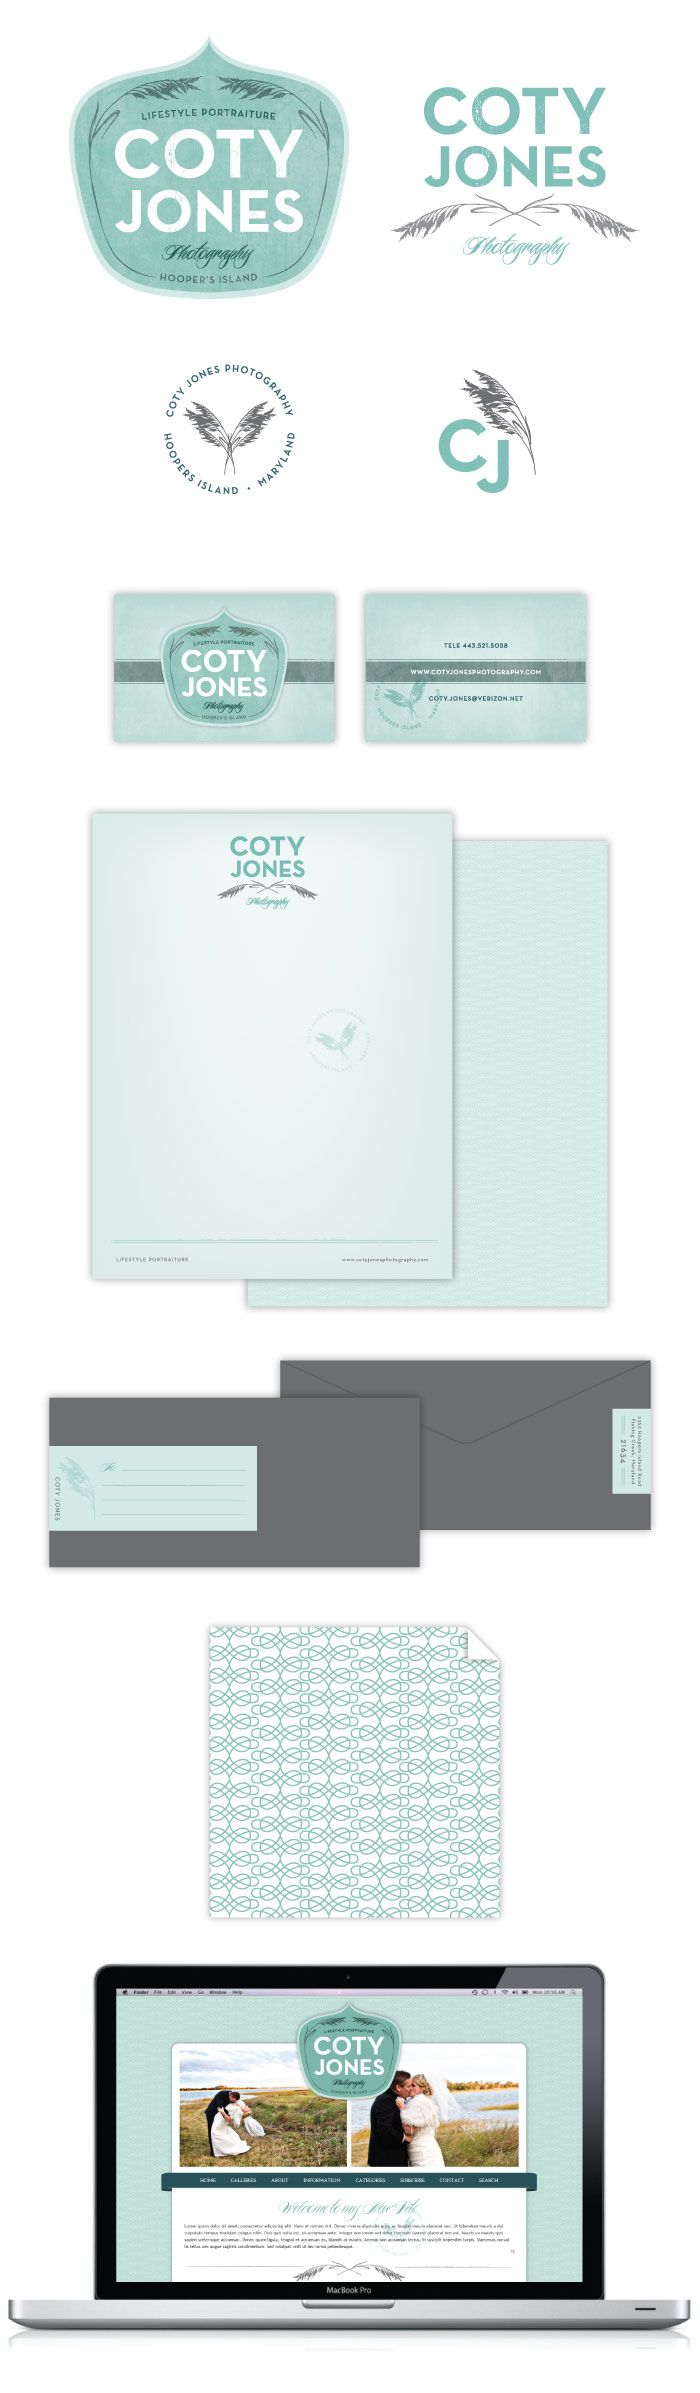 Coty Jones | Braizen | Branding & Design for Small Business: Design Inspiration, Branding Design, Business Logos Branding, Grey And White, Jones Logos And Branding, Small Business, Logos Design, Logos Inspiration, Design Set